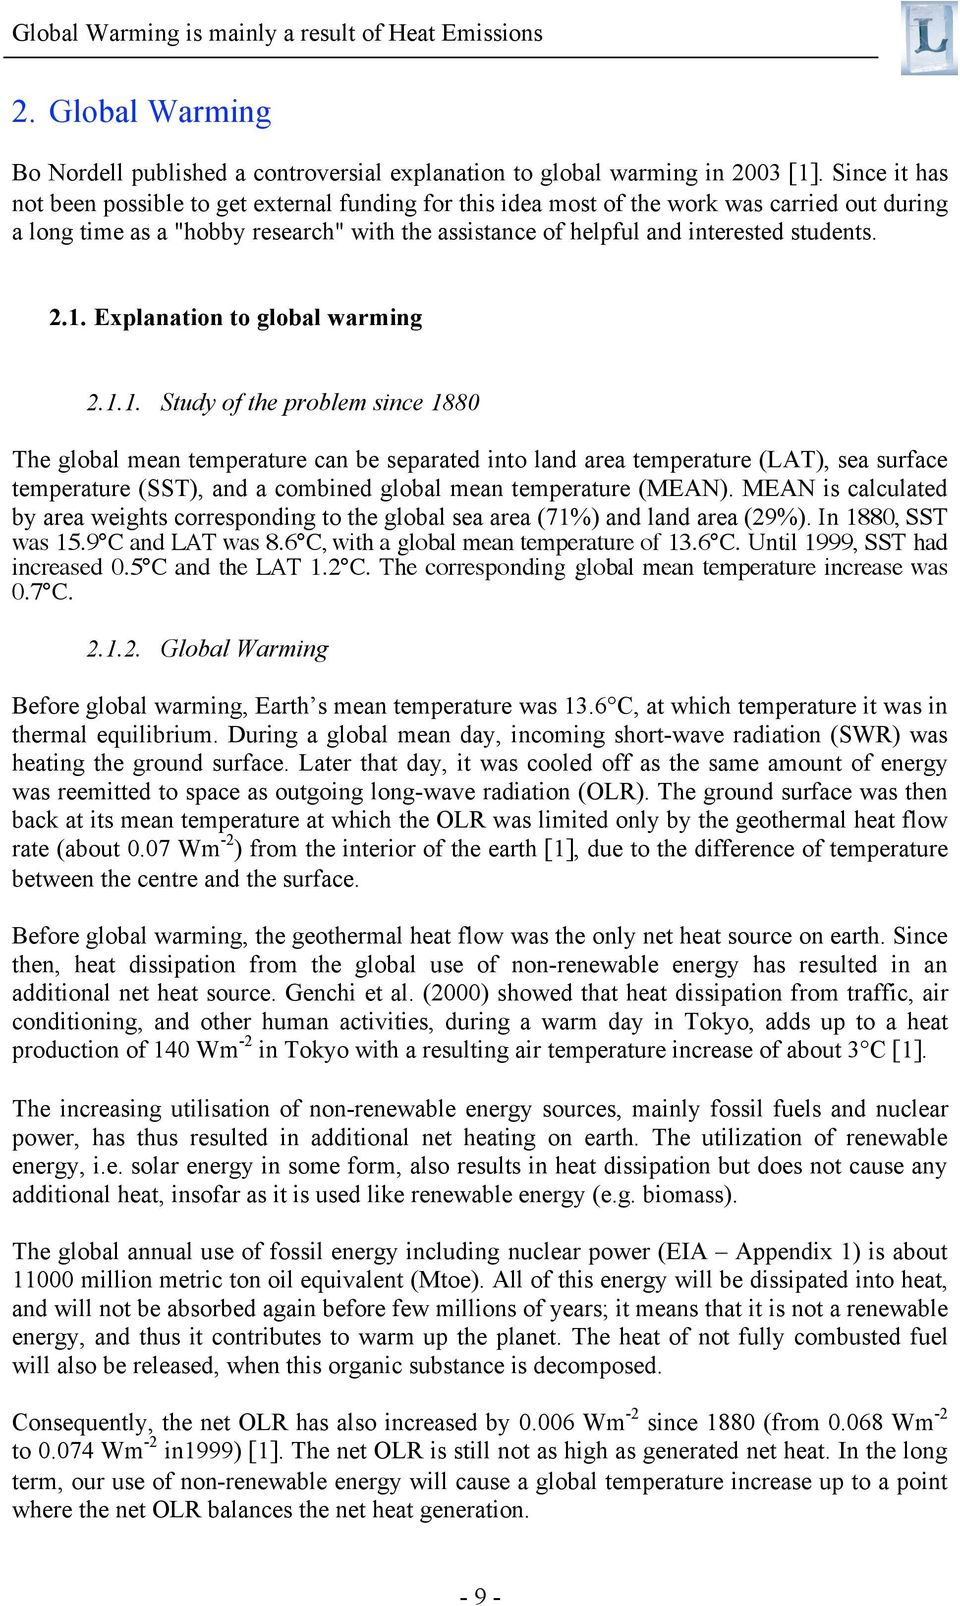 2.1. Explanation to global warming 2.1.1. Study of the problem since 1880 The global mean temperature can be separated into land area temperature (LAT), sea surface temperature (SST), and a combined global mean temperature (MEAN).